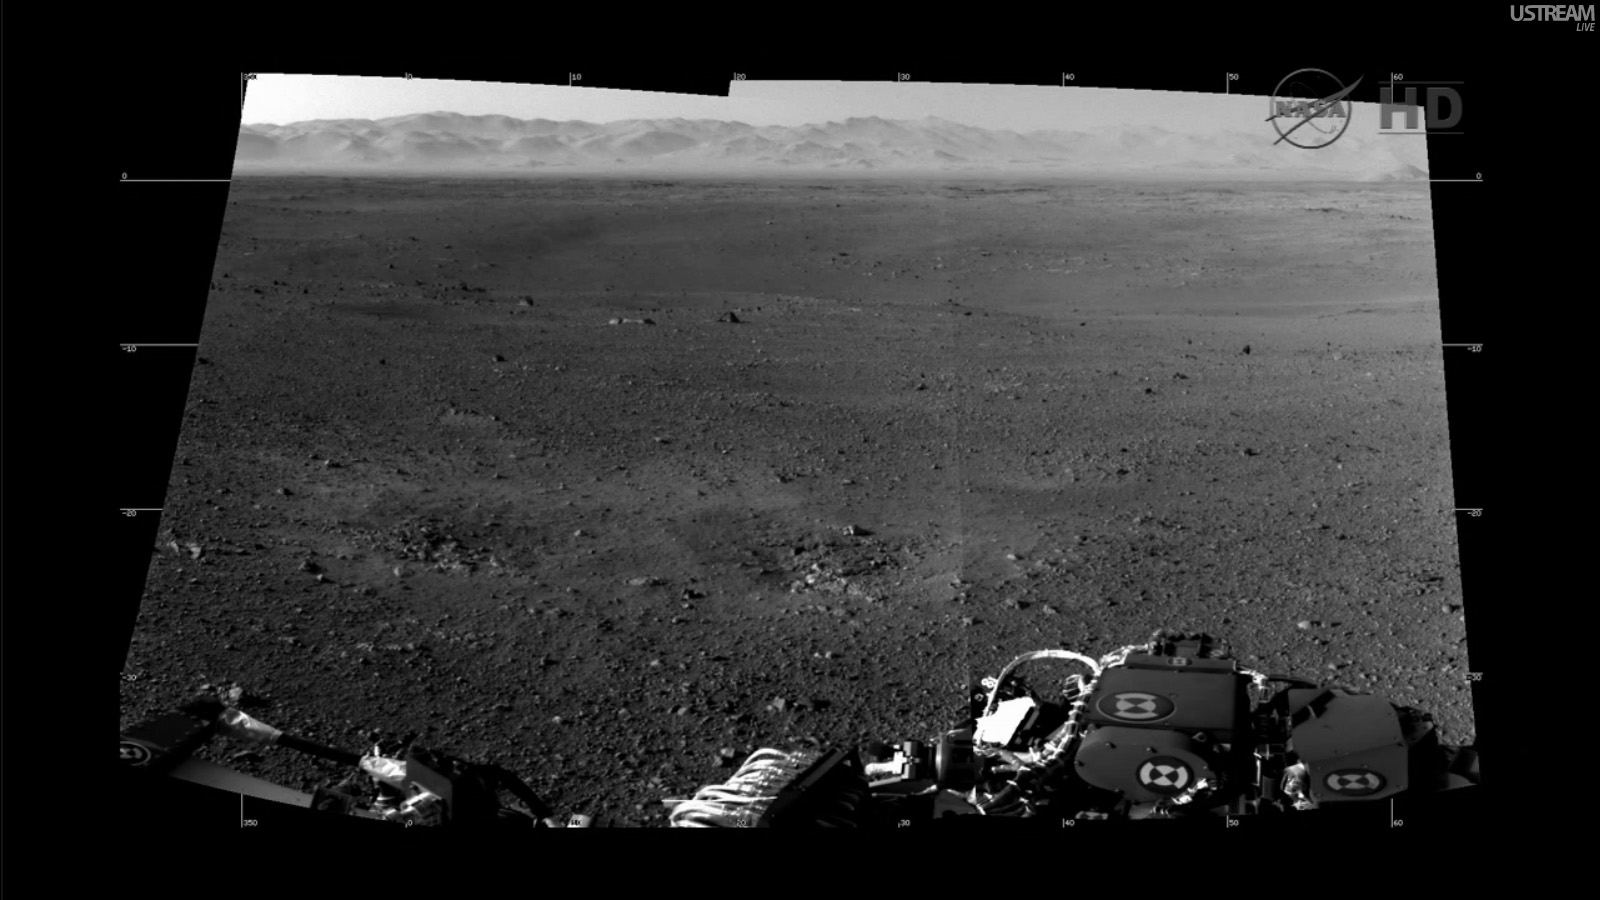 The view from Curiosity's Navcam -- panorama mosaic of Gale Crater. Credit: NASA/JPL-Caltech